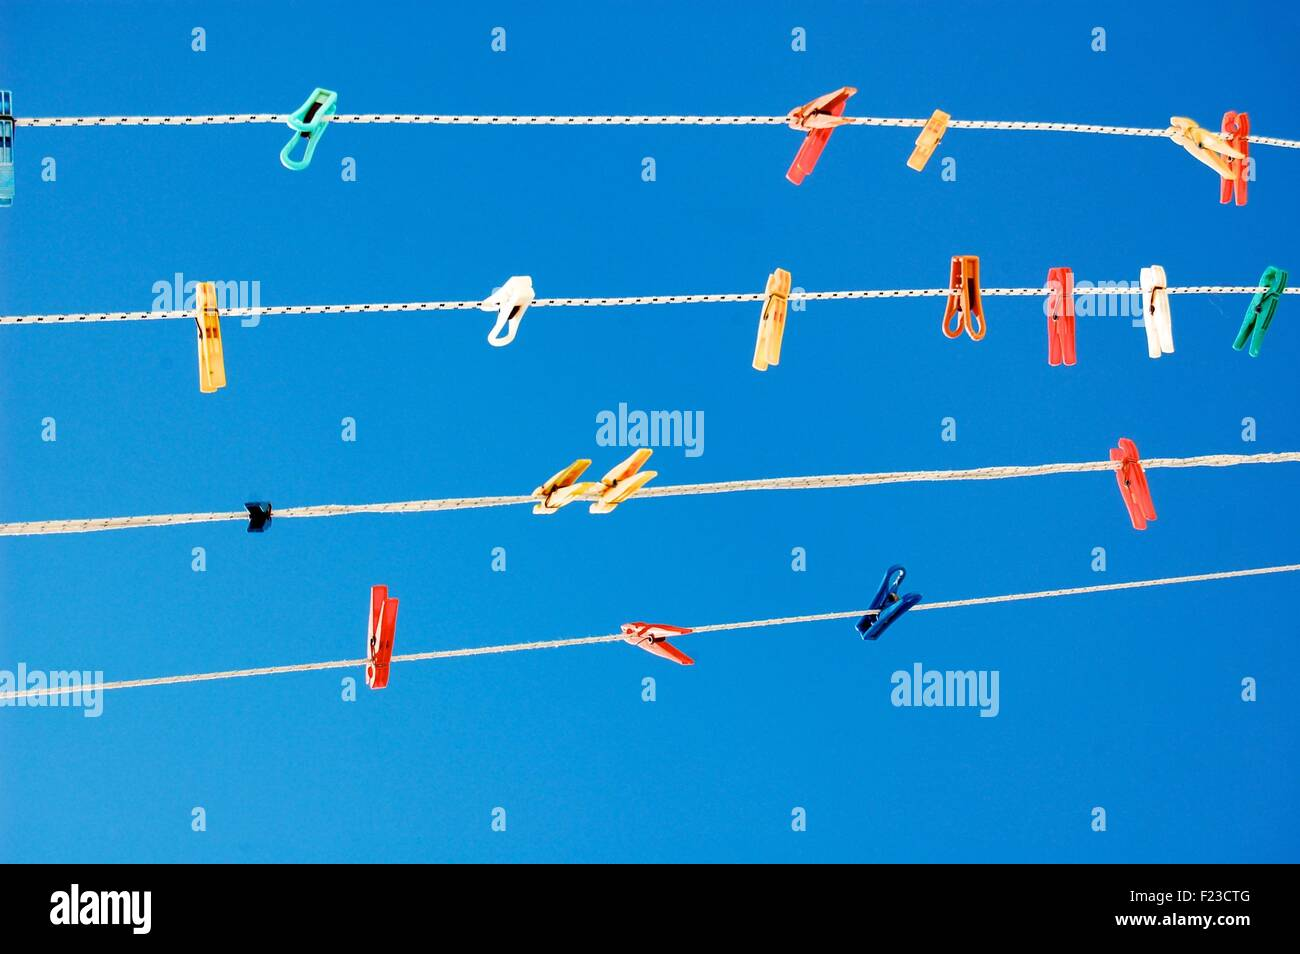 Multicolored pegs on washing lines against a bright blue sky - Stock Image